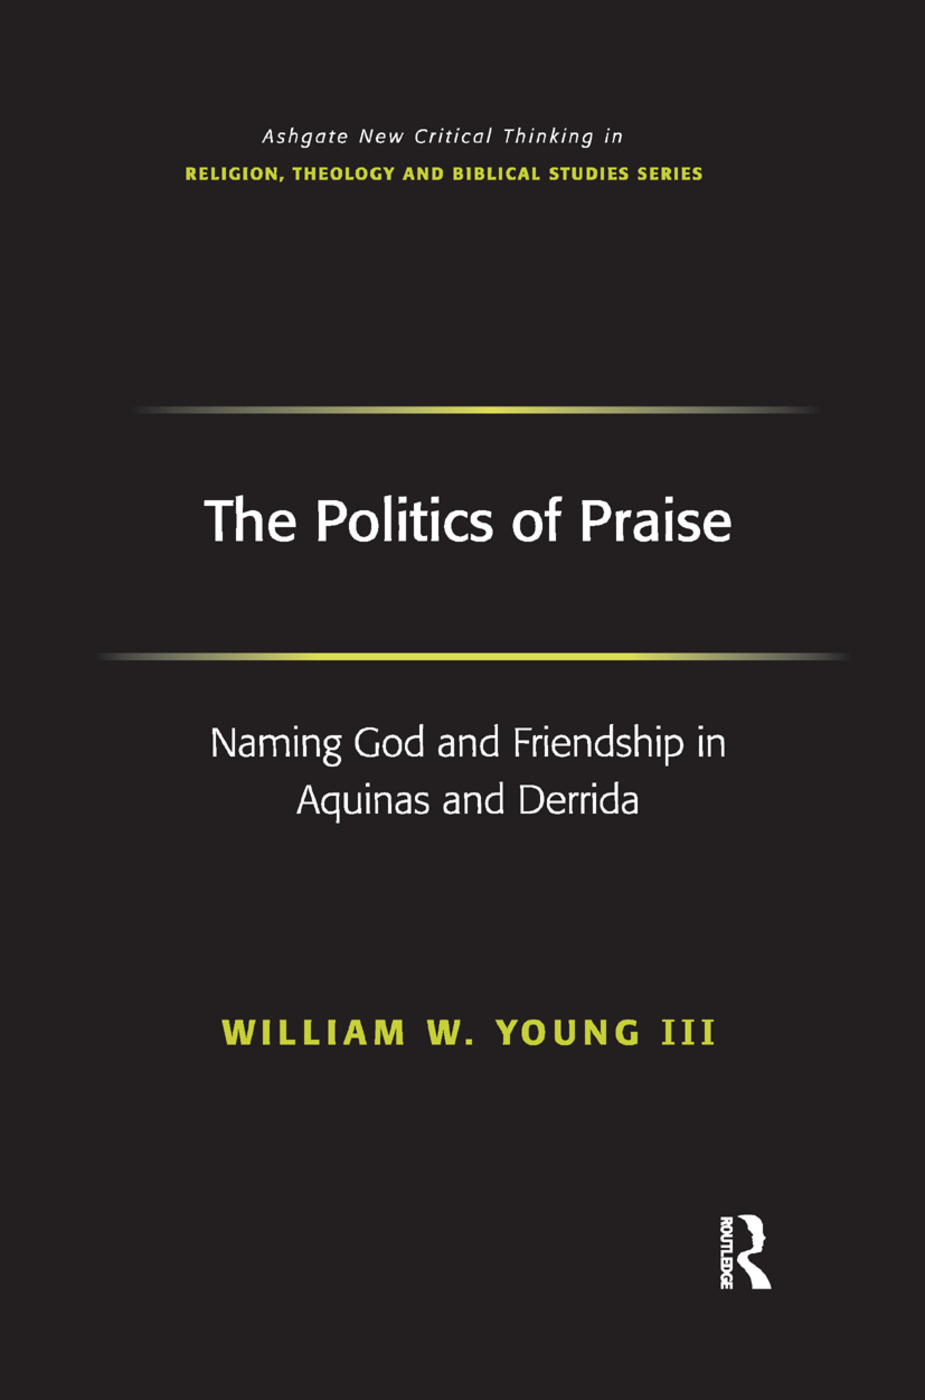 The Politics of Praise: Naming God and Friendship in Aquinas and Derrida book cover